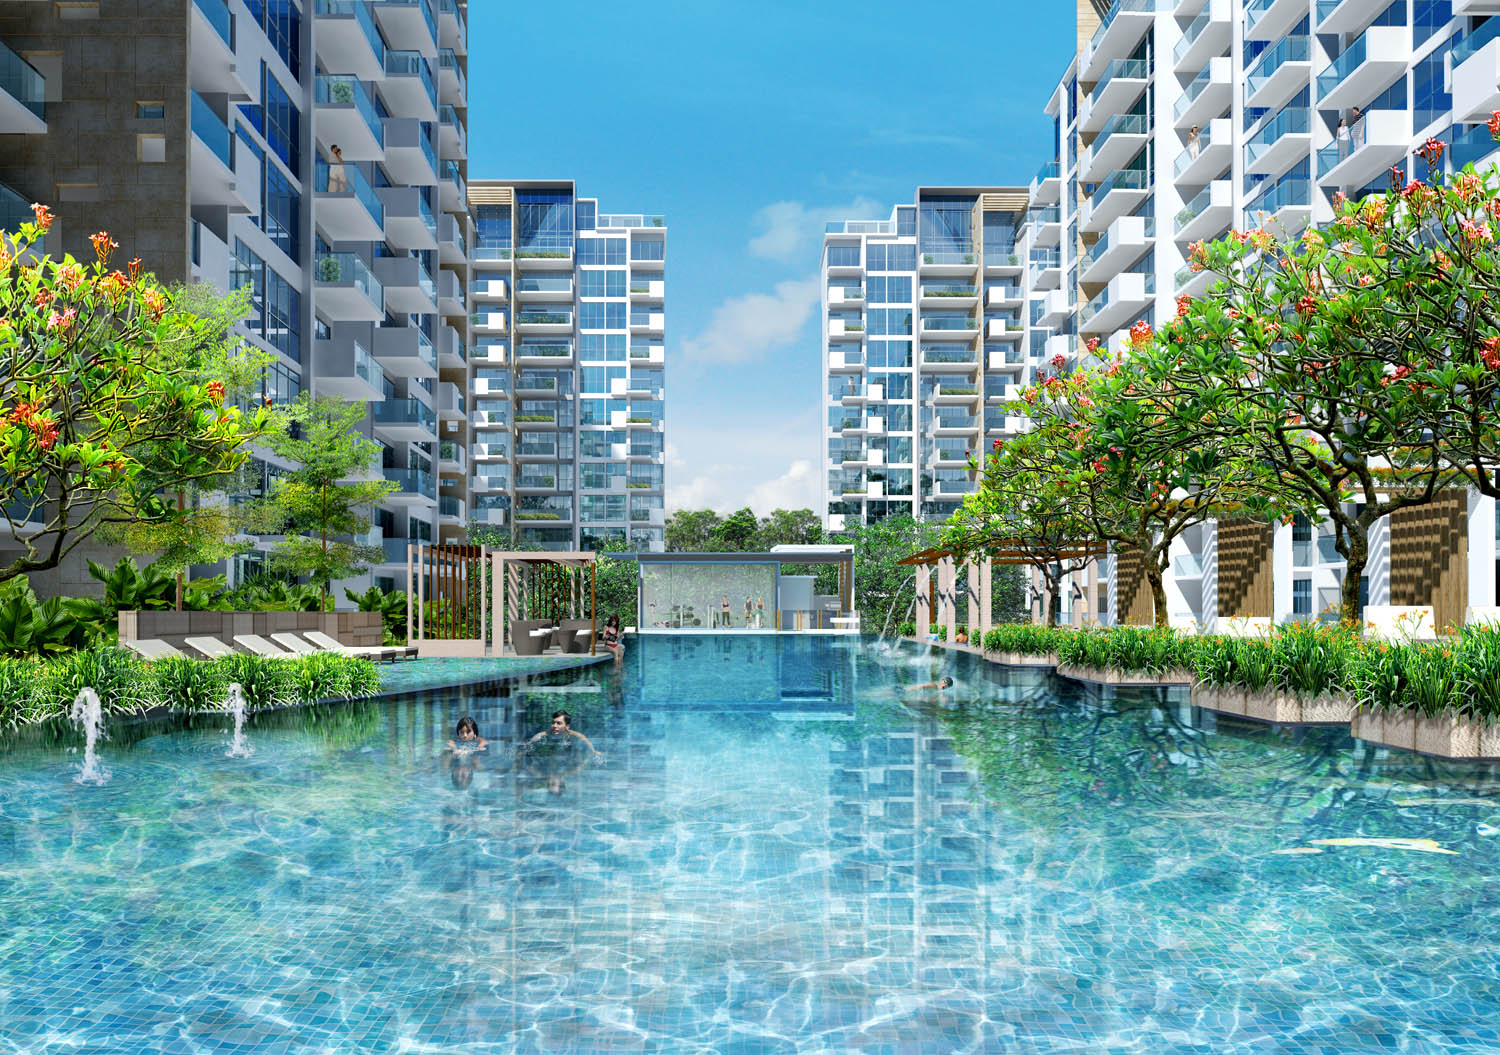 Executive condominium Singapore